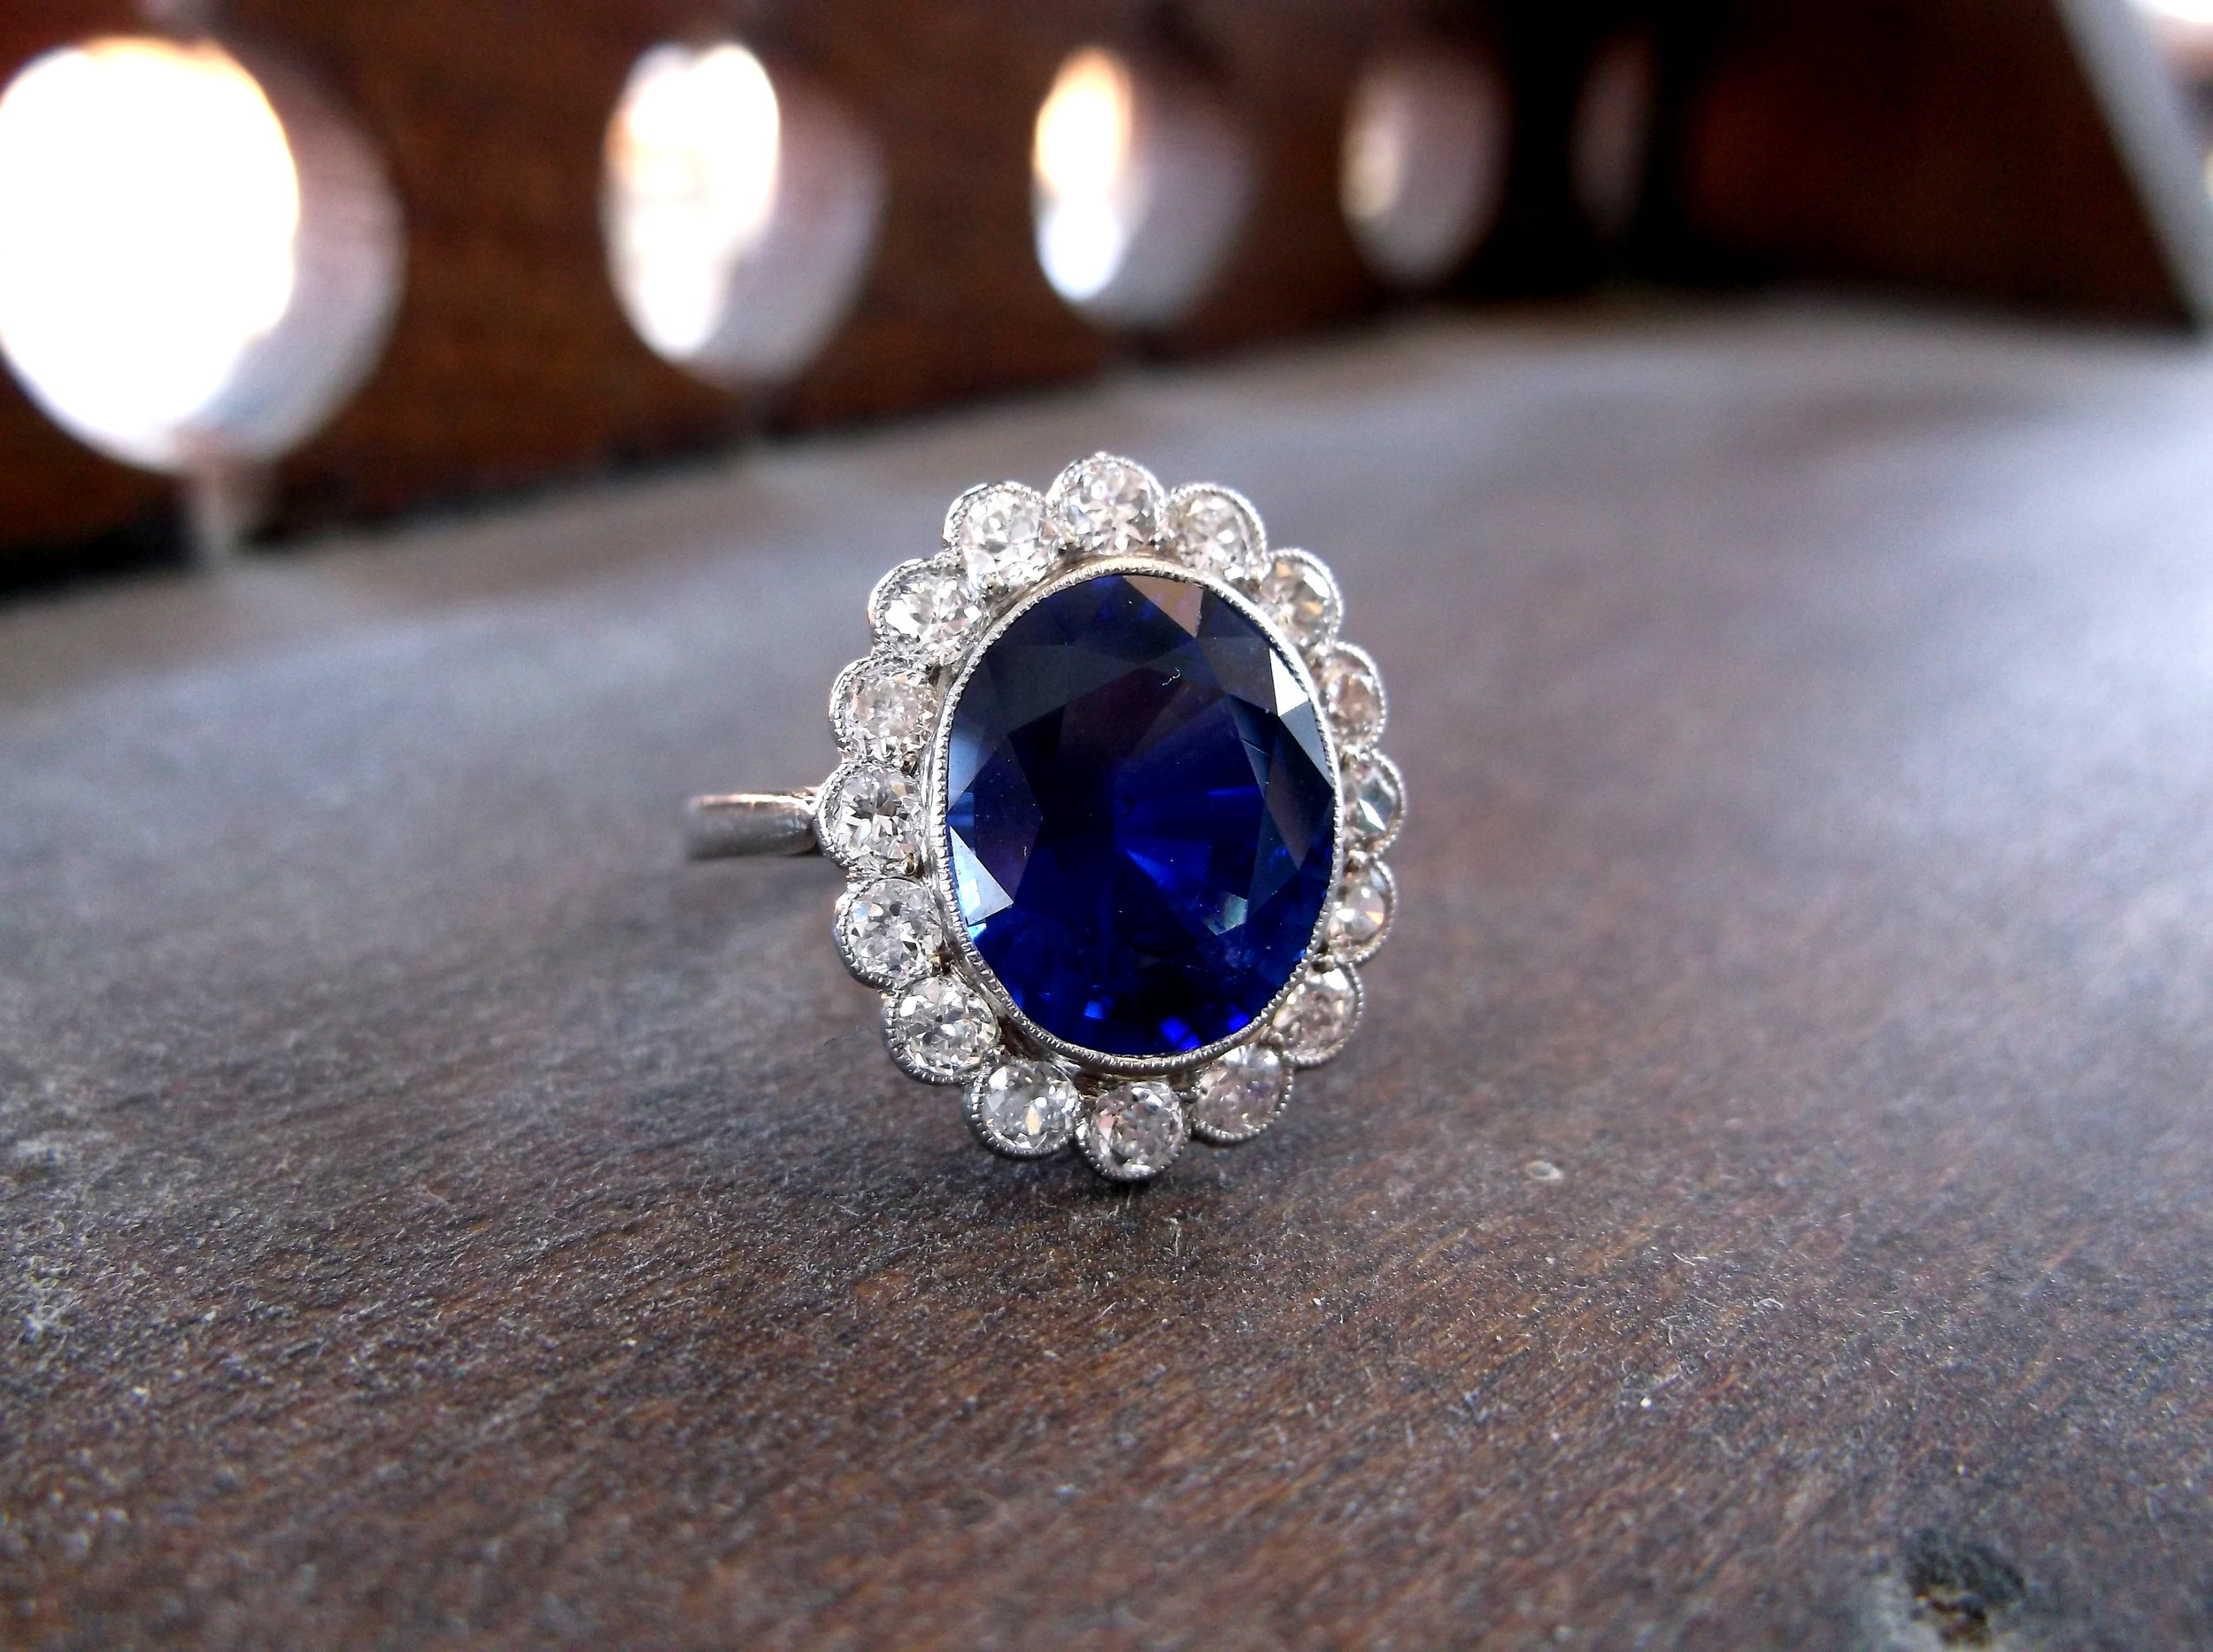 SOLD - Vibrant and captivating 4.50 carat oval blue sapphire, surrounded by 0.75 carats total weight in Old Mine diamonds.